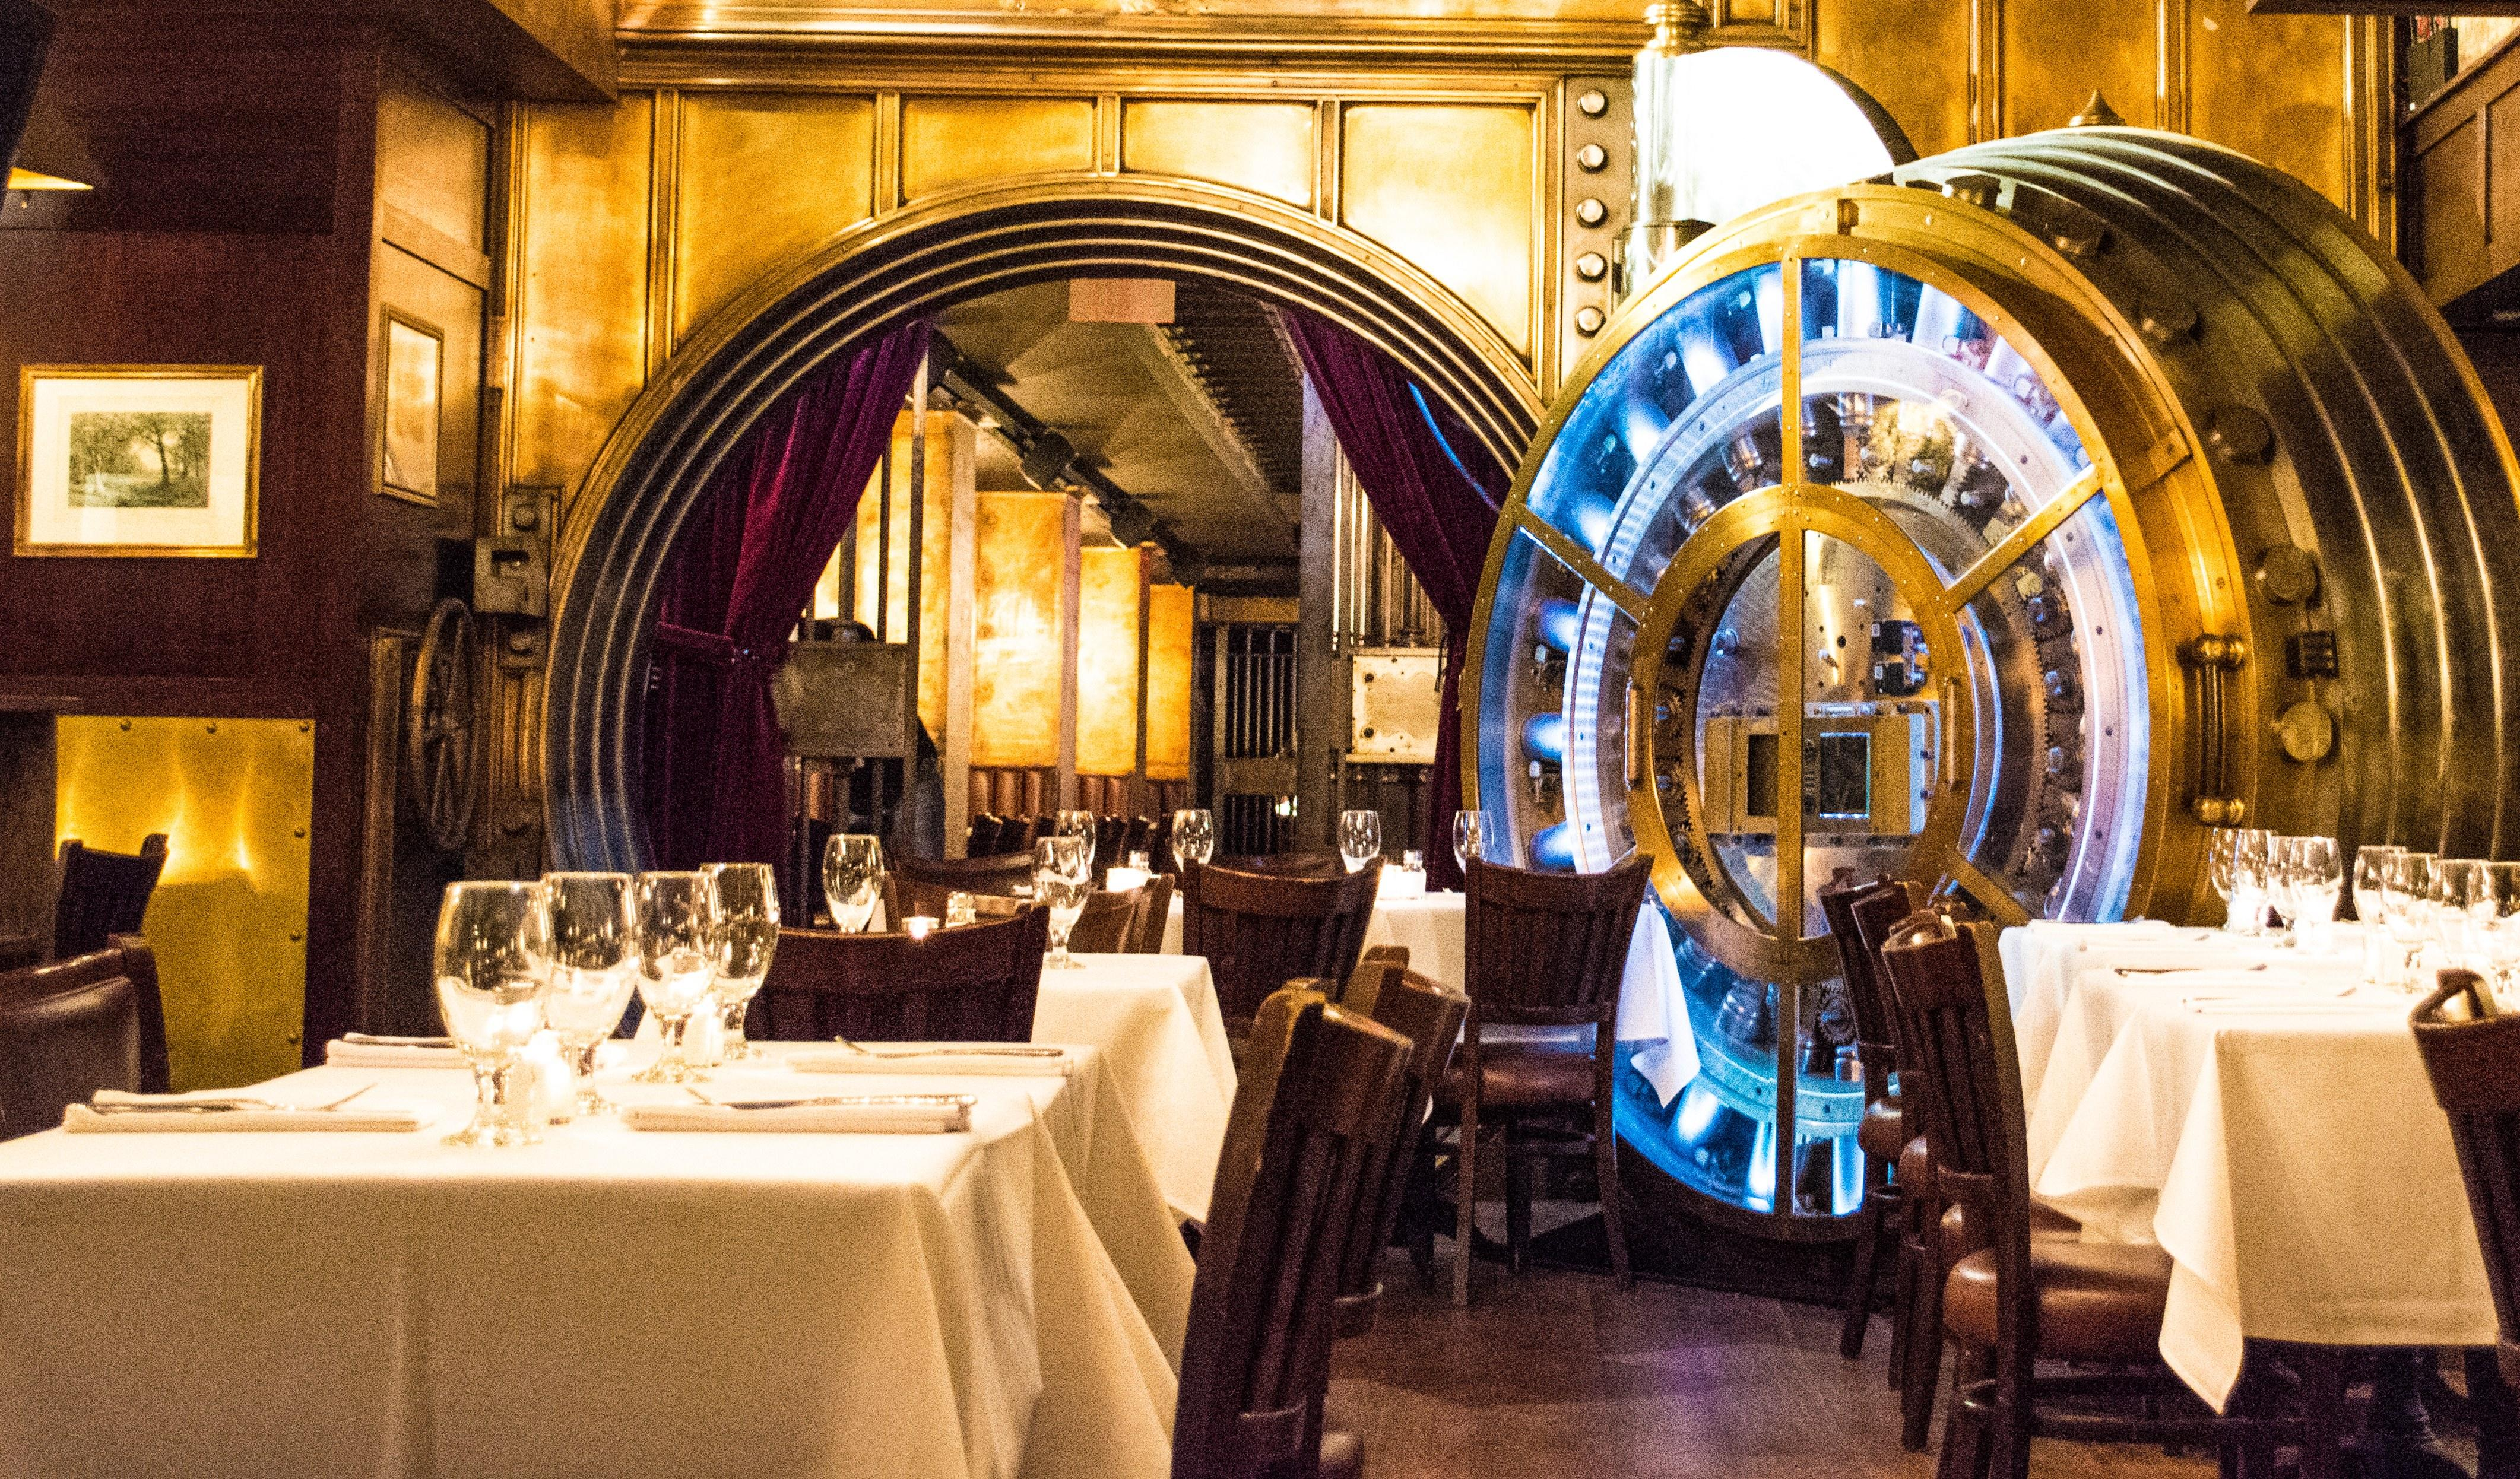 """Built inside a bank vault beneath an iconic skyscraper, Trinity Place Restaurant & Bar is stocked full of history. Enter the restaurant from one of the two vault doors weighing 35 tons and enjoy one of the bar's signature cocktails paired with a dish created by chef Donal Crosbie. <a href=""""https://www.trinityplacenyc.com/"""" rel=""""nofollow noopener"""" target=""""_blank"""" data-ylk=""""slk:trinityplacenyc.com"""" class=""""link rapid-noclick-resp"""">trinityplacenyc.com</a>"""